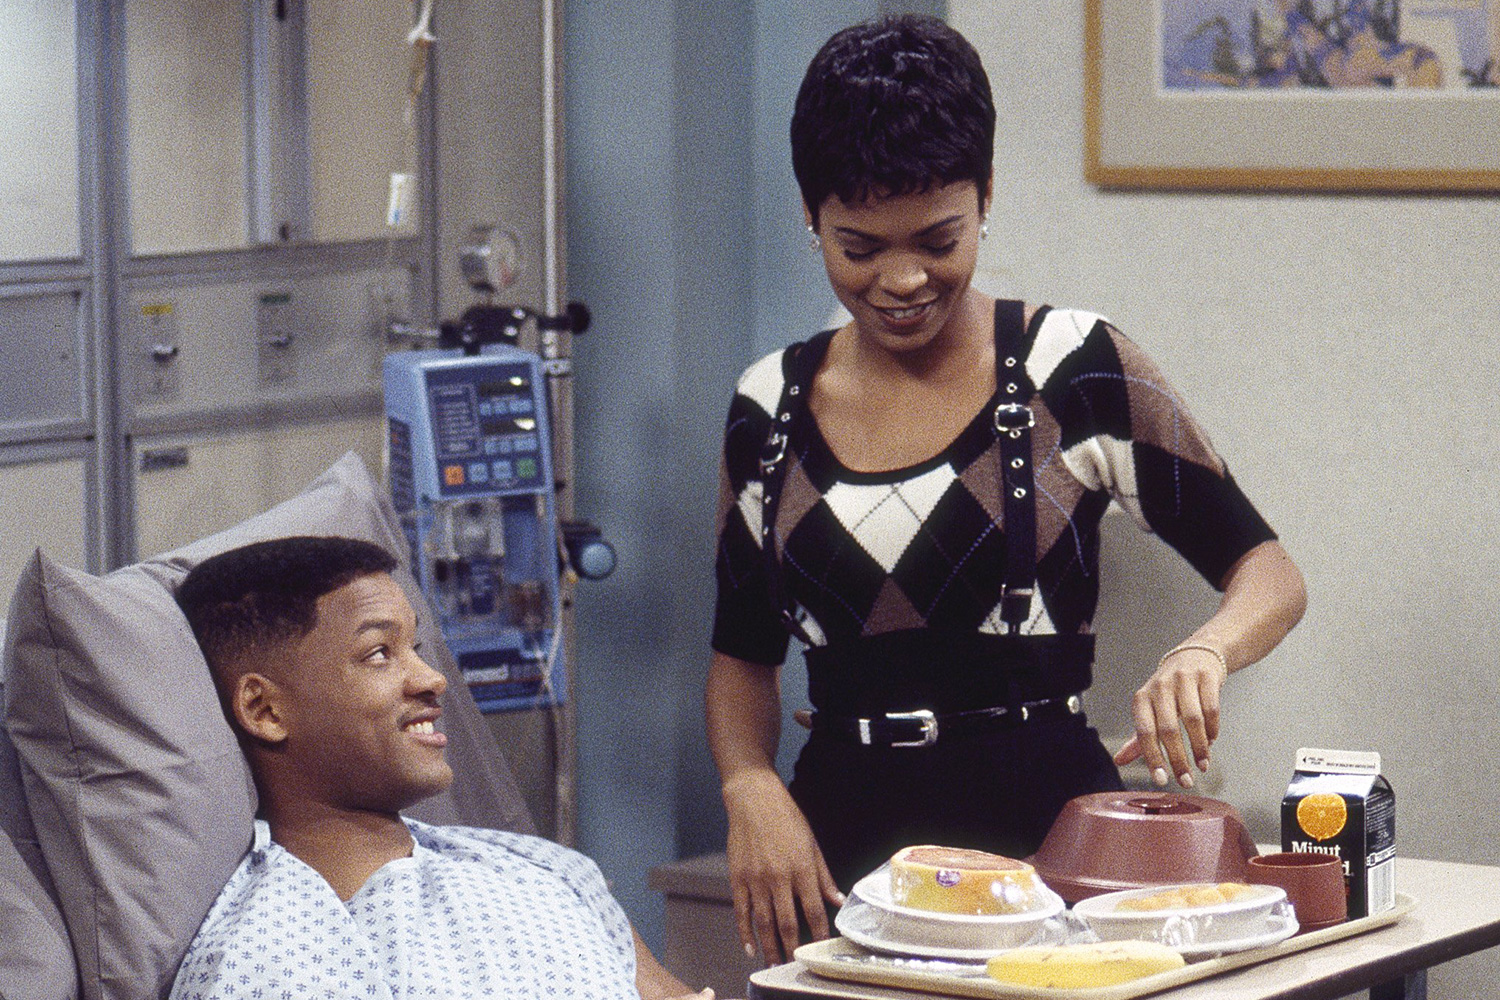 The Fresh Prince of Bel-Air Will Smith as William 'Will' Smith, Nia Long as Lisa Wilkes